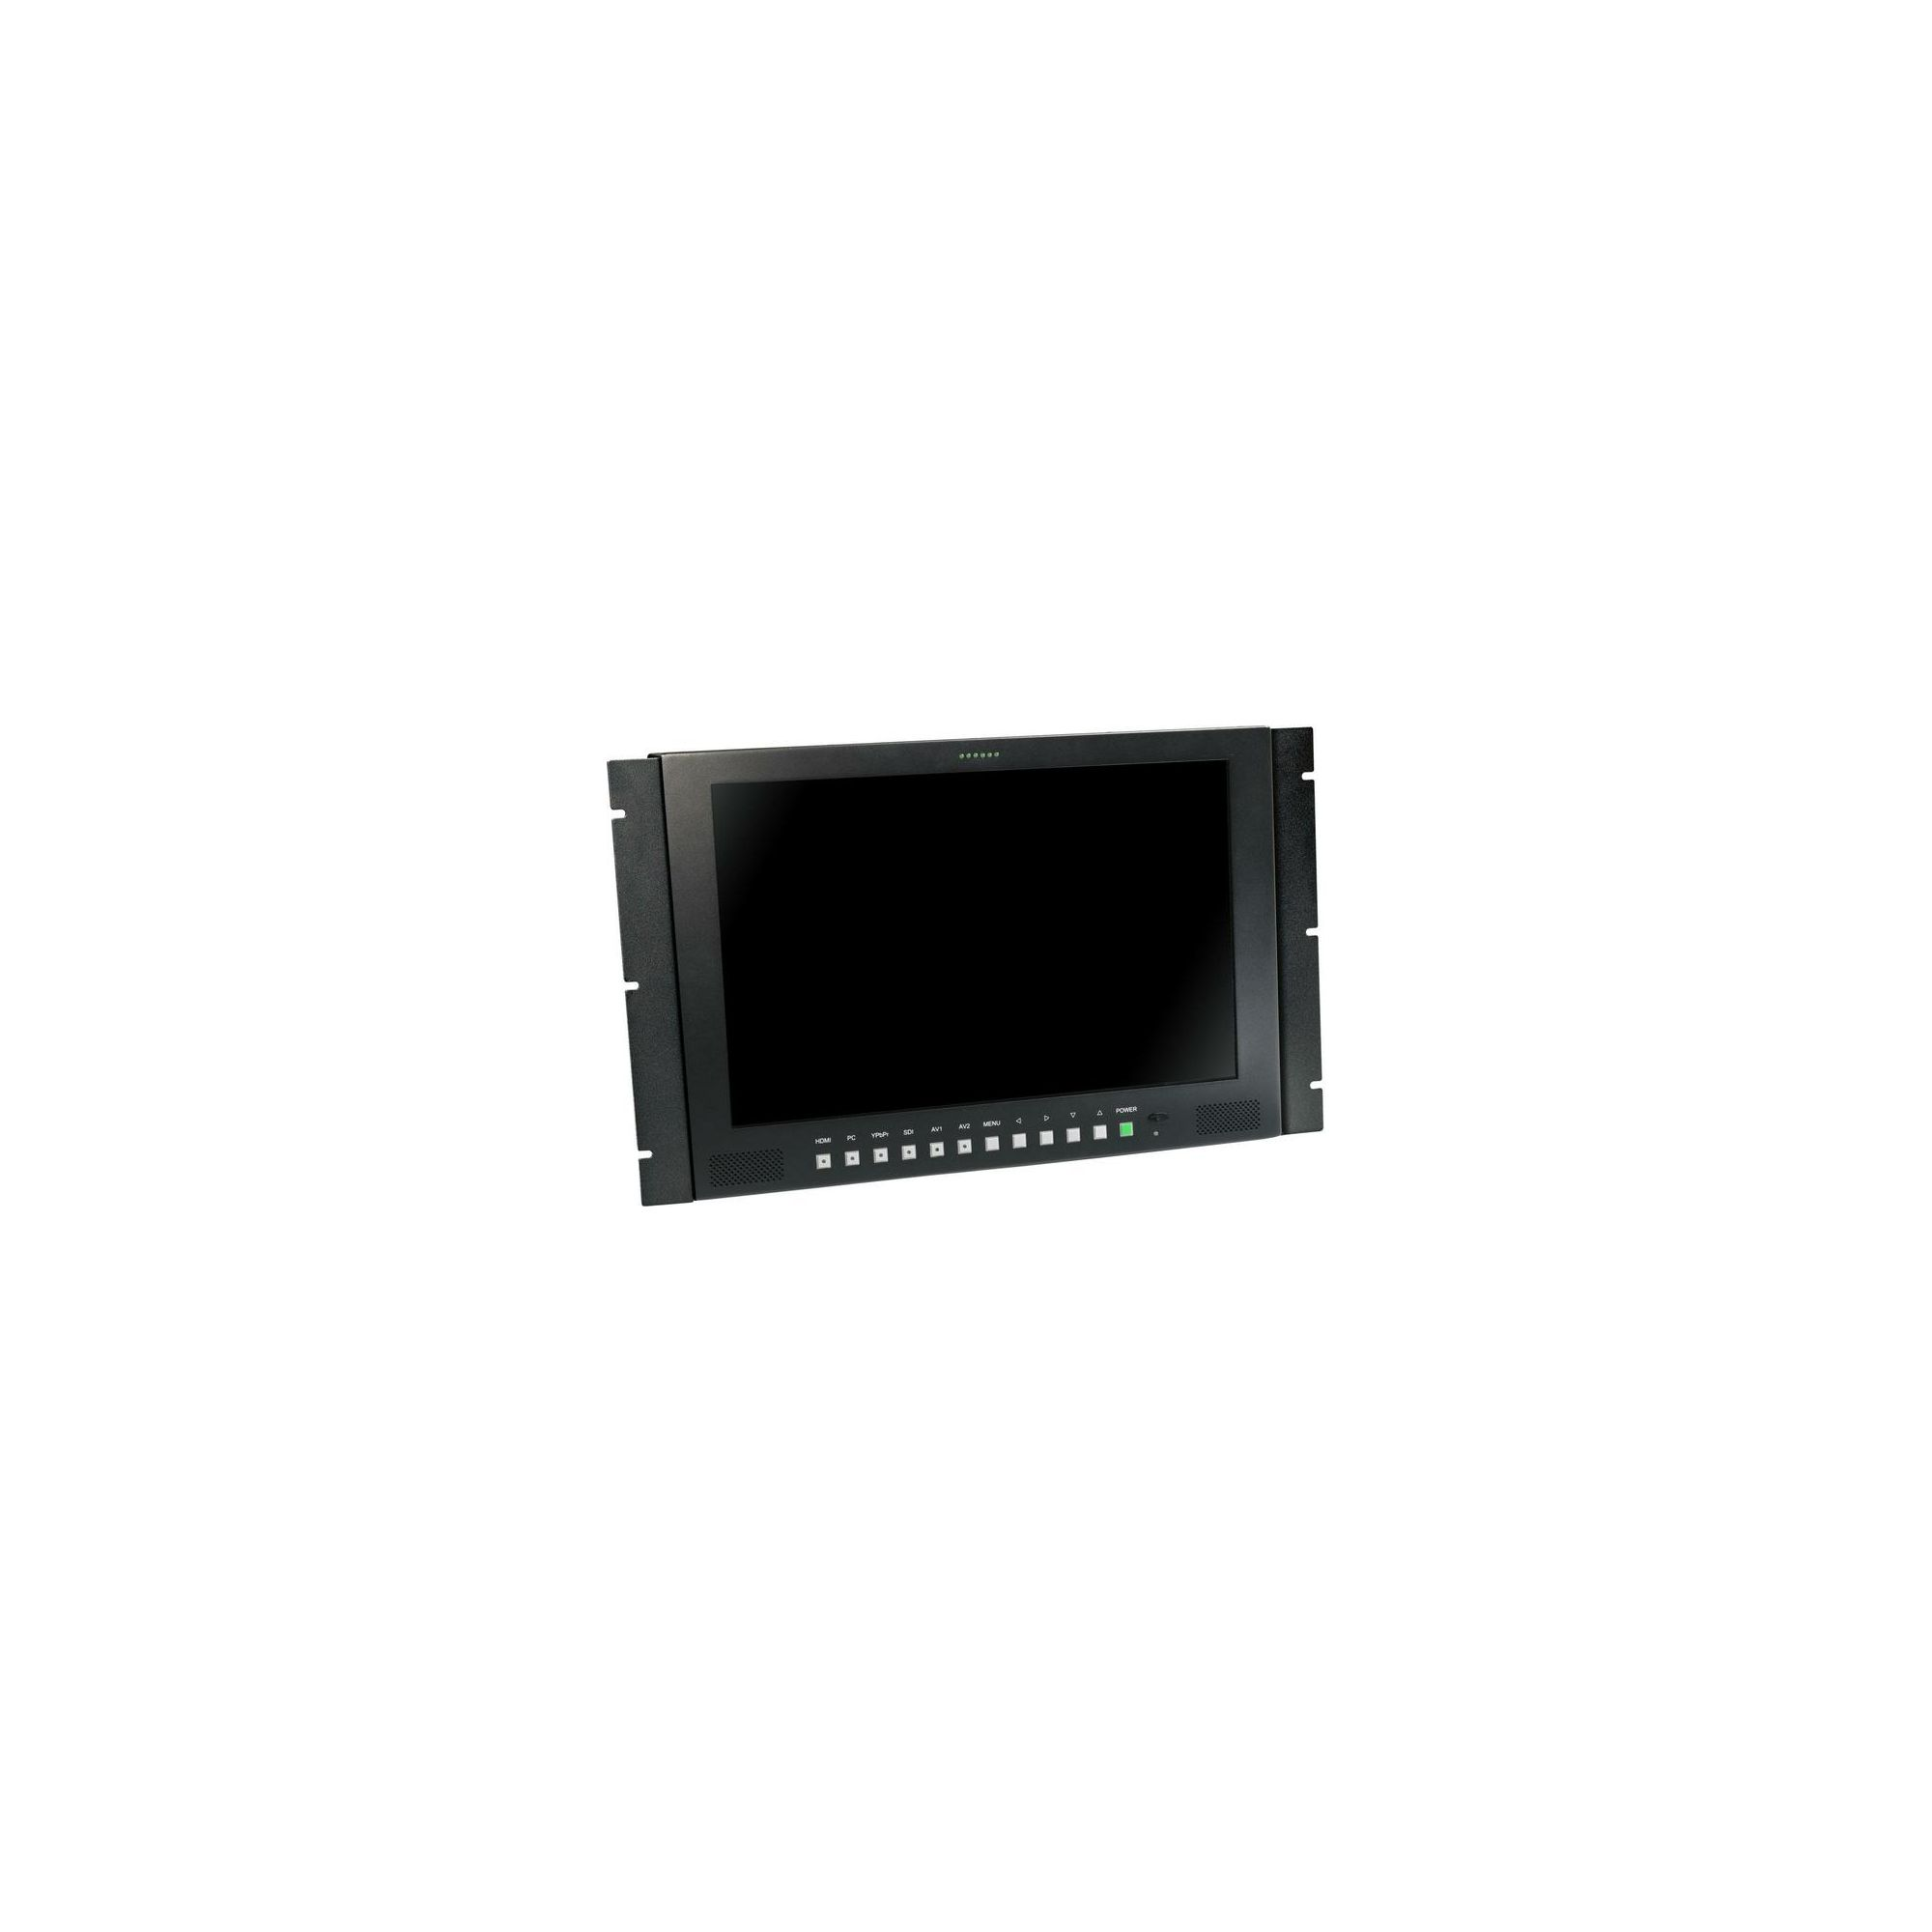 17' HD LCD MONITOR IN RACK MOUNT FRAME at Tesco Direct